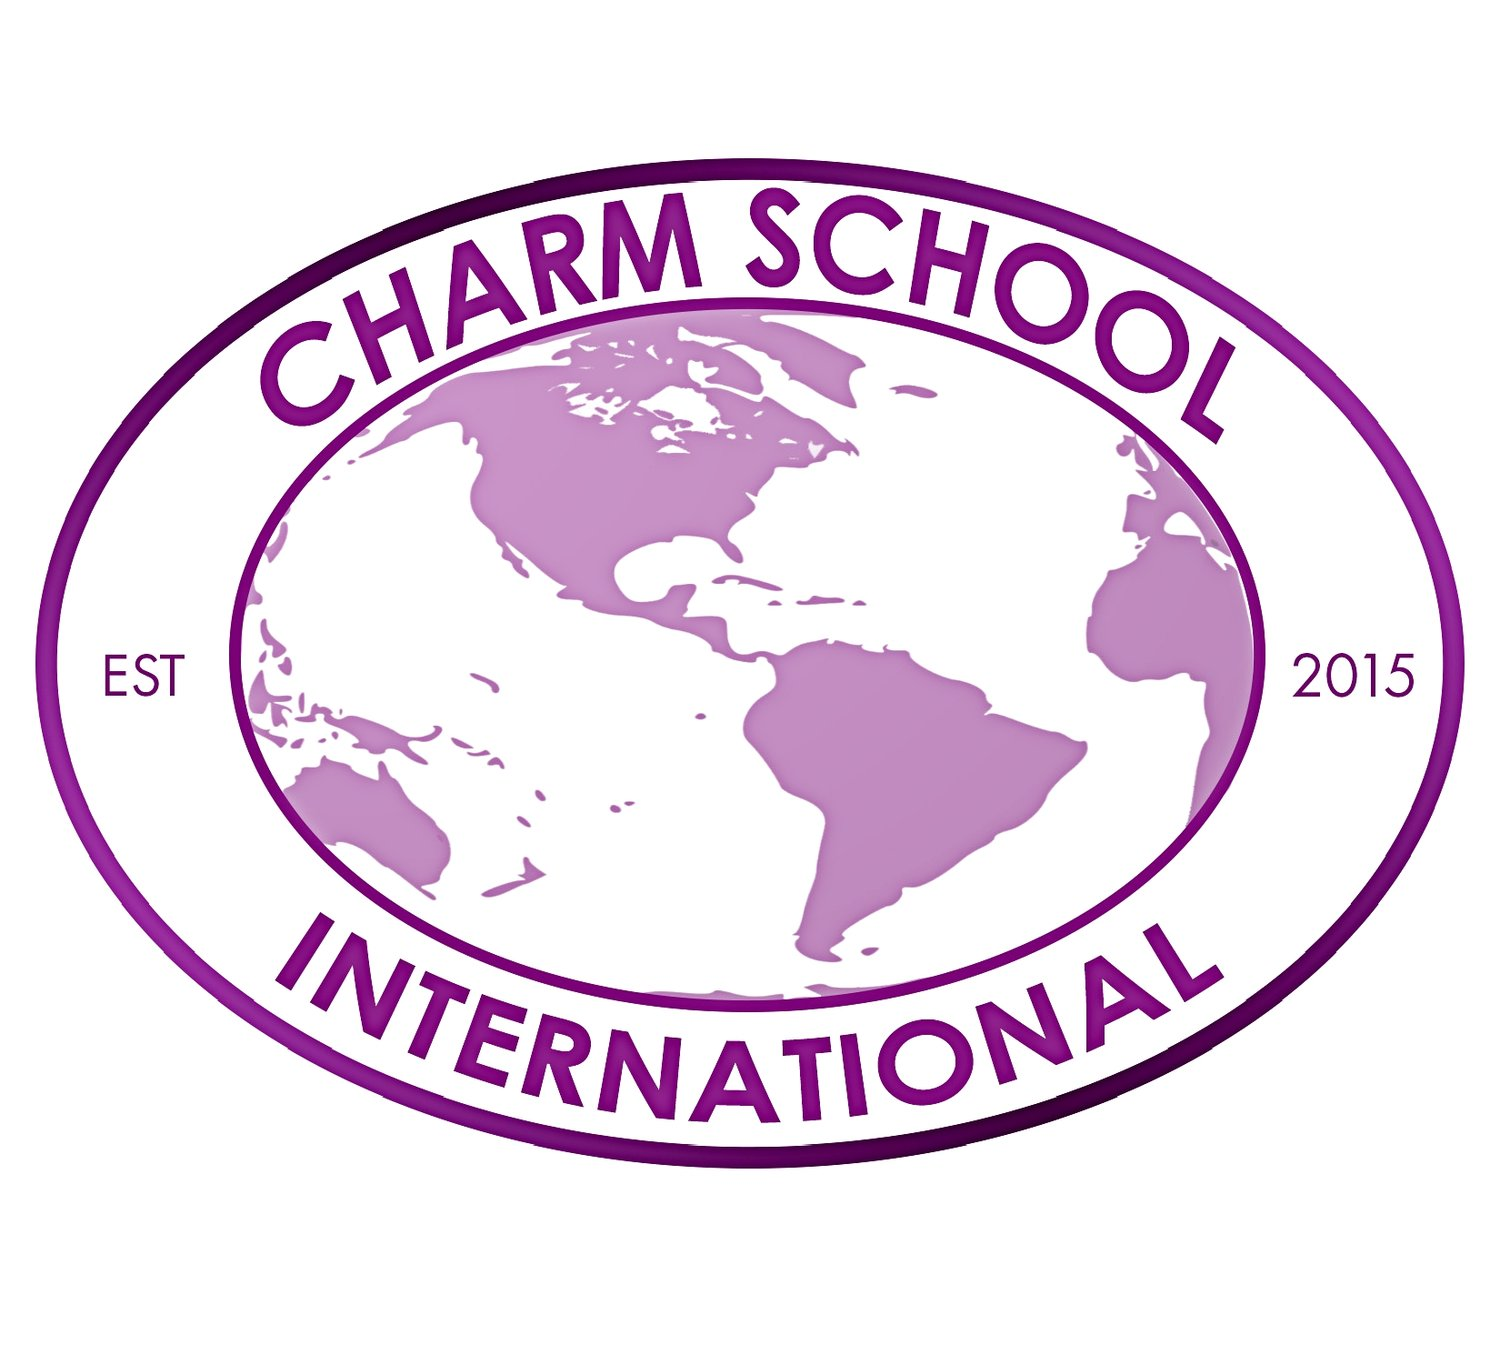 Charm School International